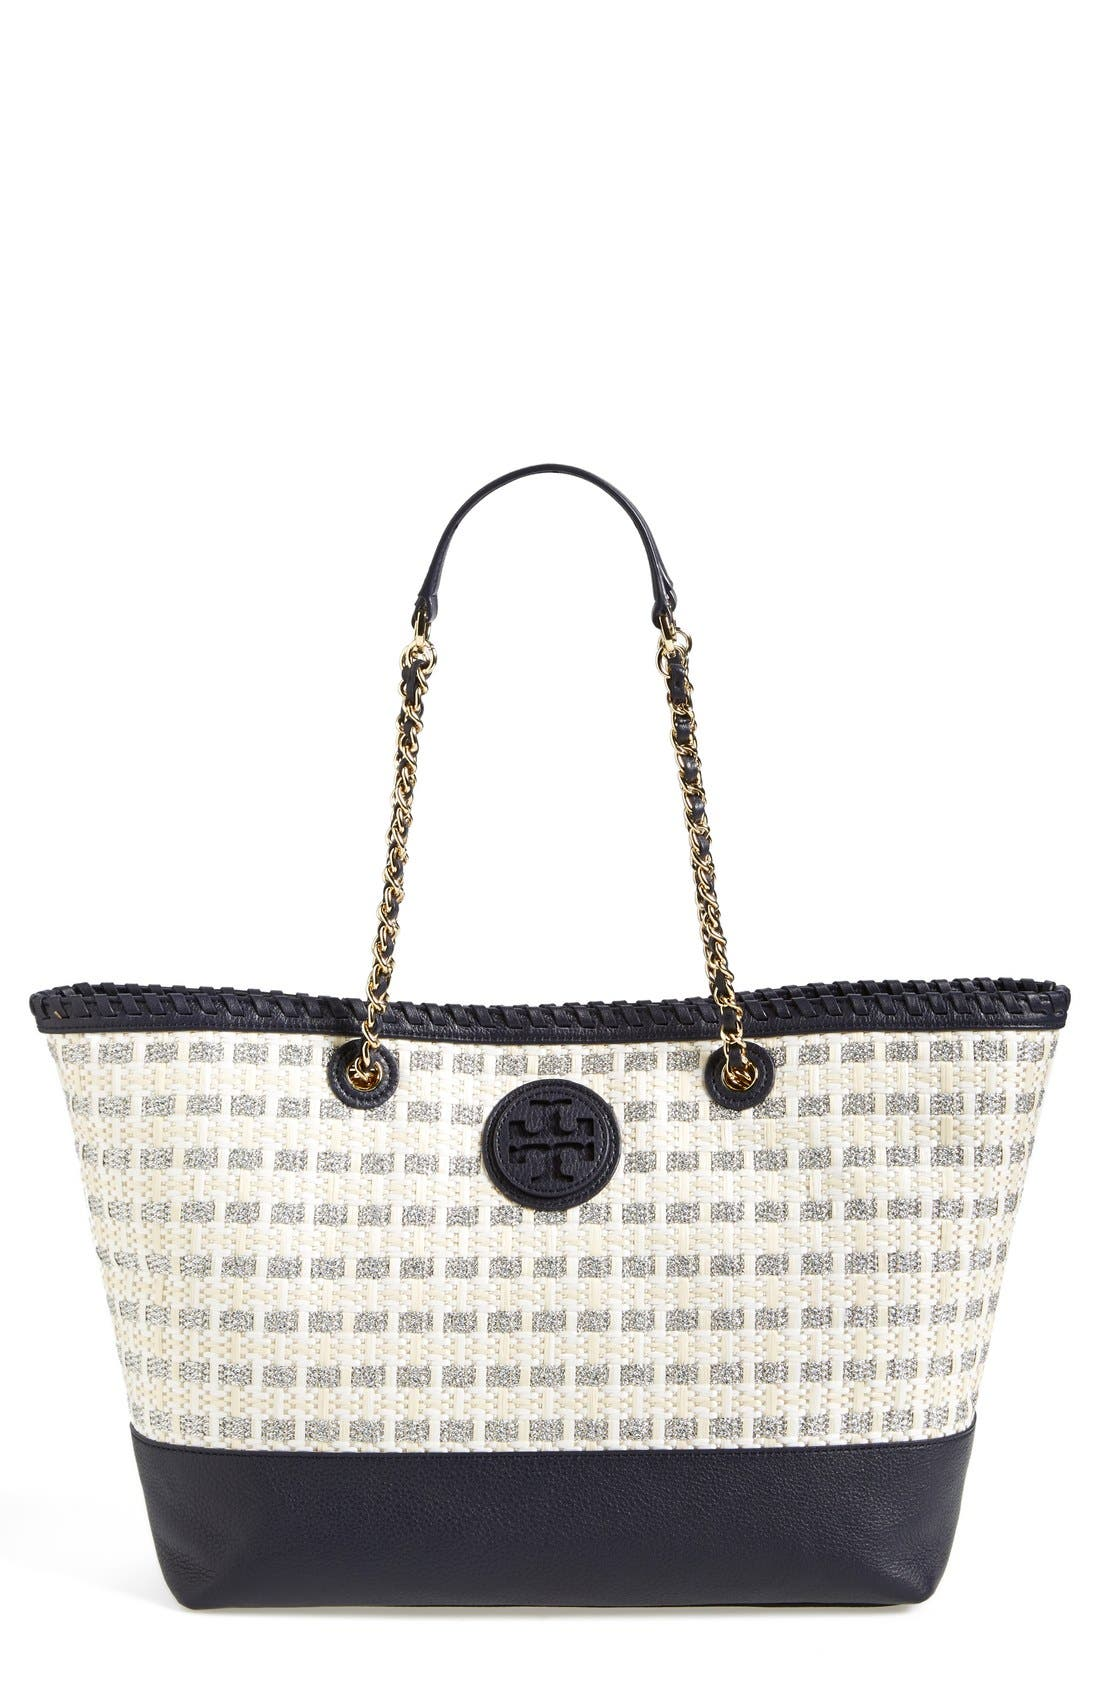 Alternate Image 1 Selected - Tory Burch 'Marion' Woven Straw Tote